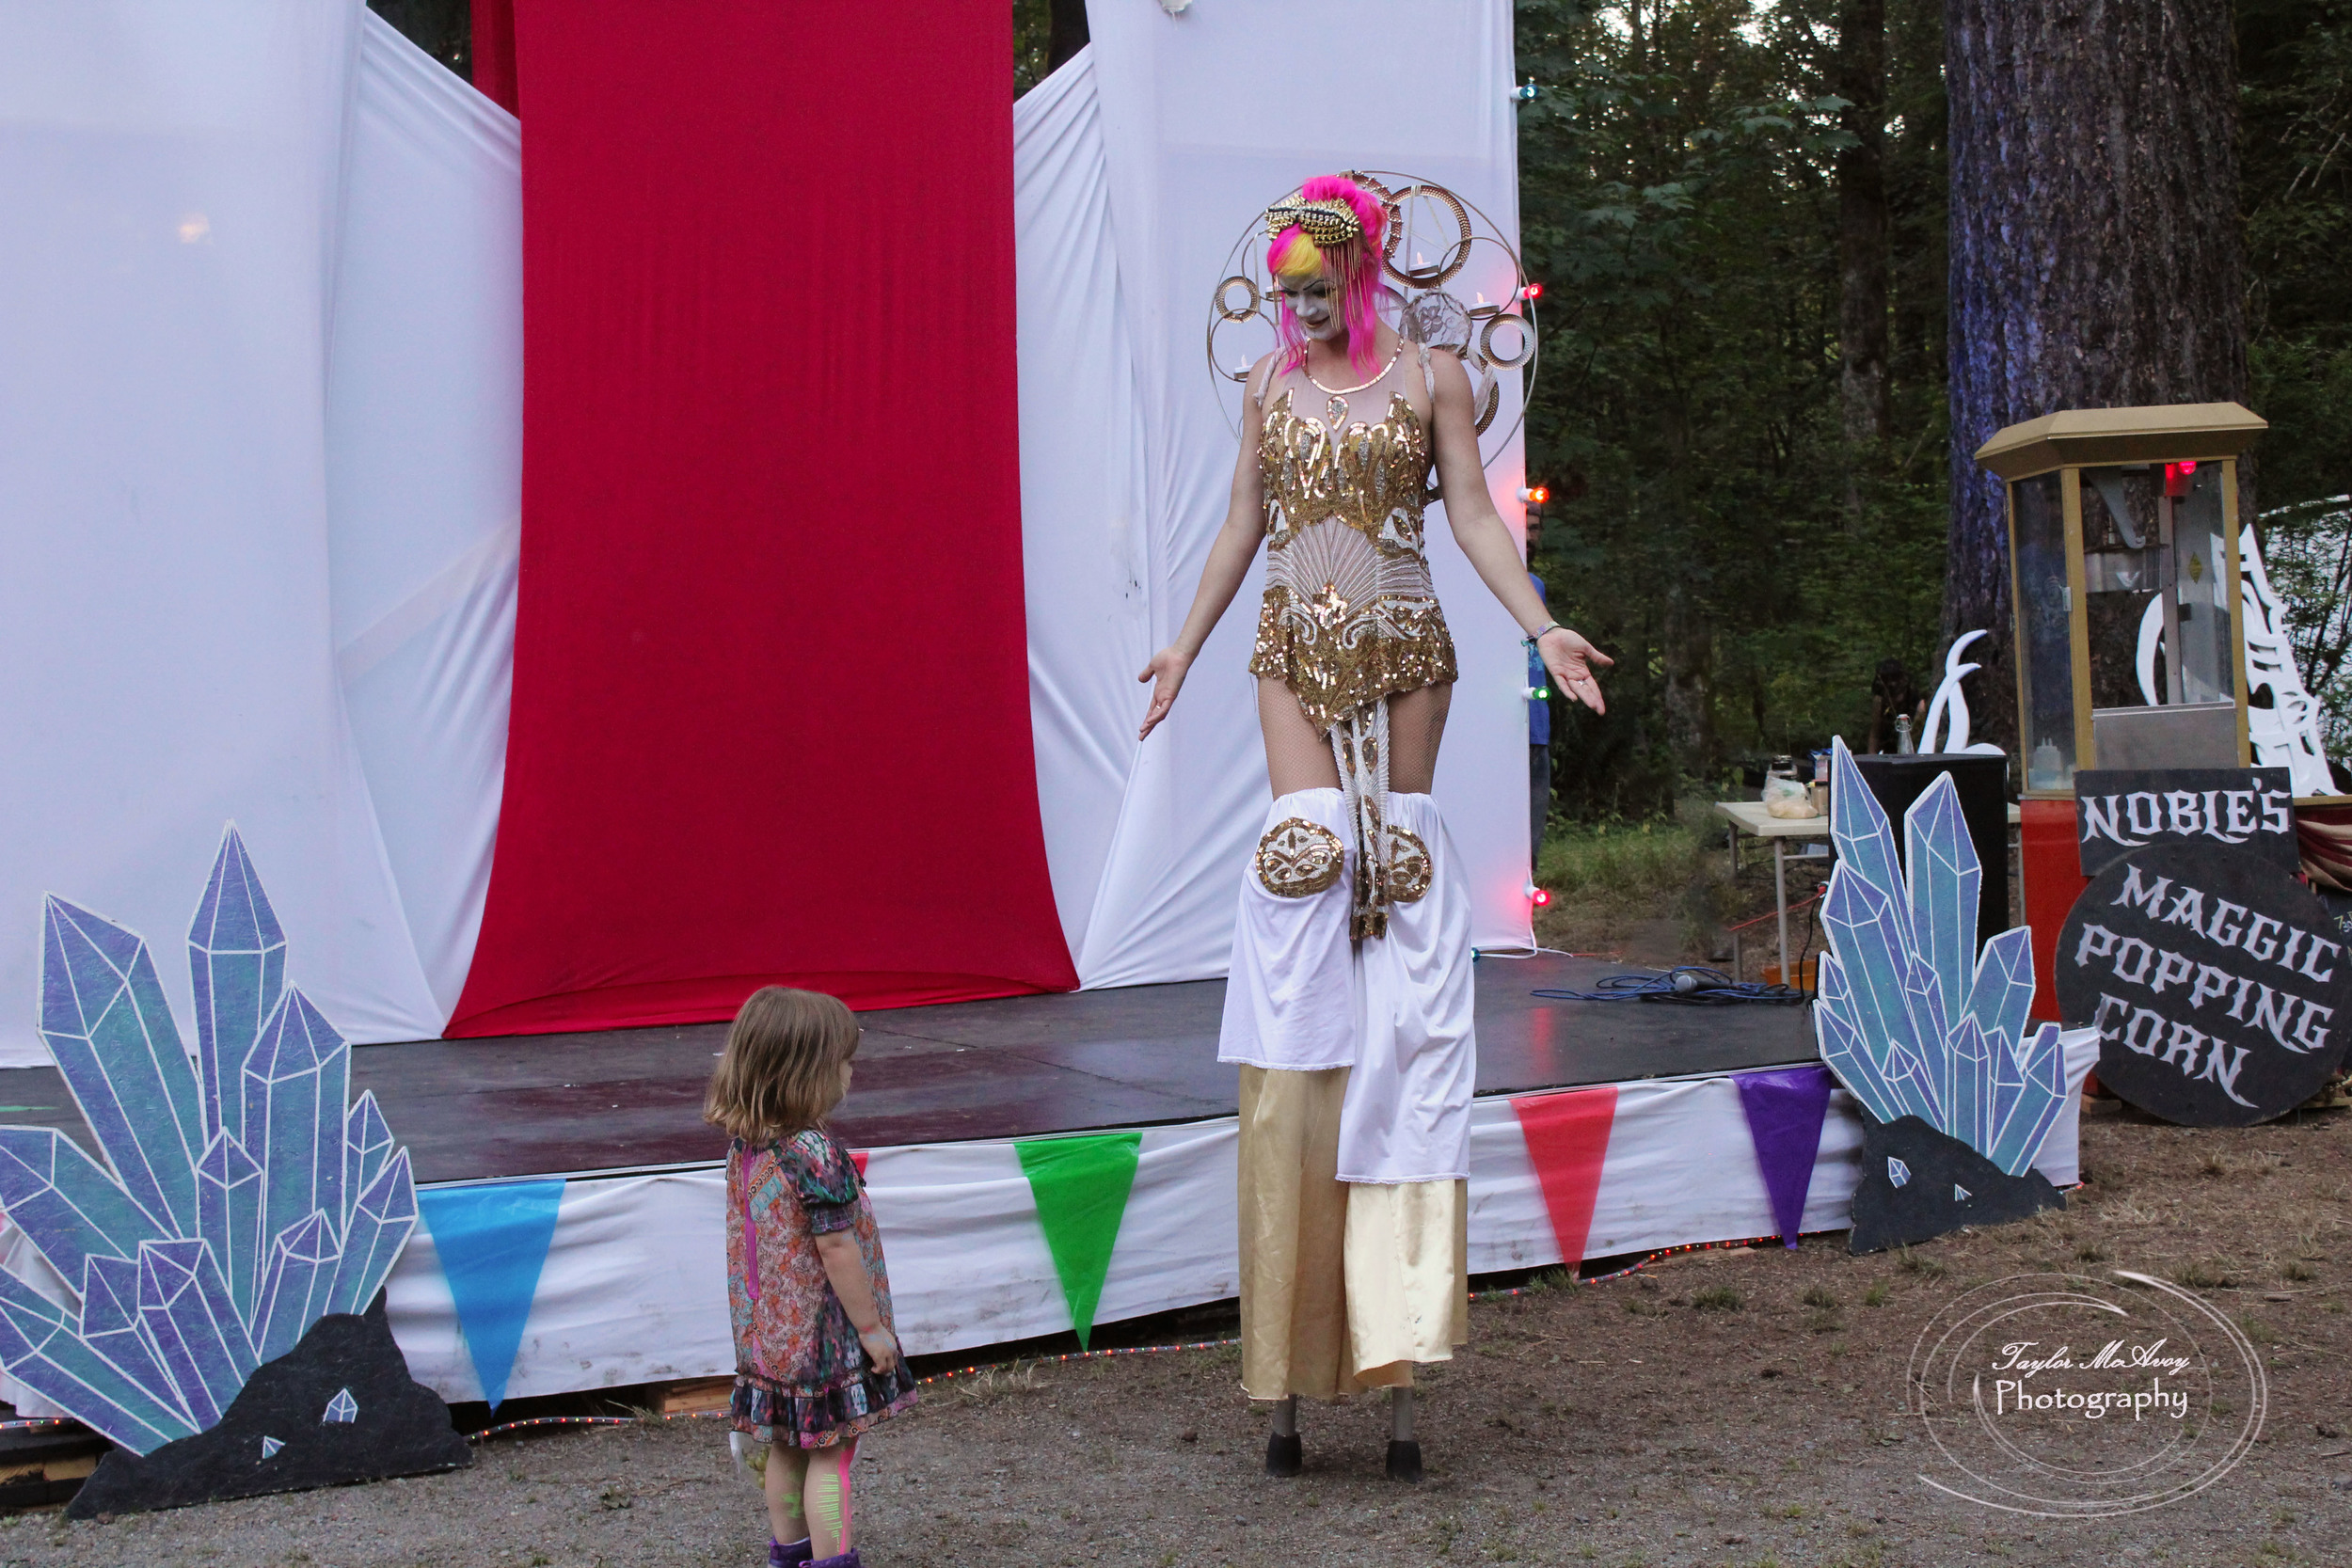 Performer Gale Force dressed in her best attire for the closing ceremonies, enchanting and stealing the heart of a young girl.